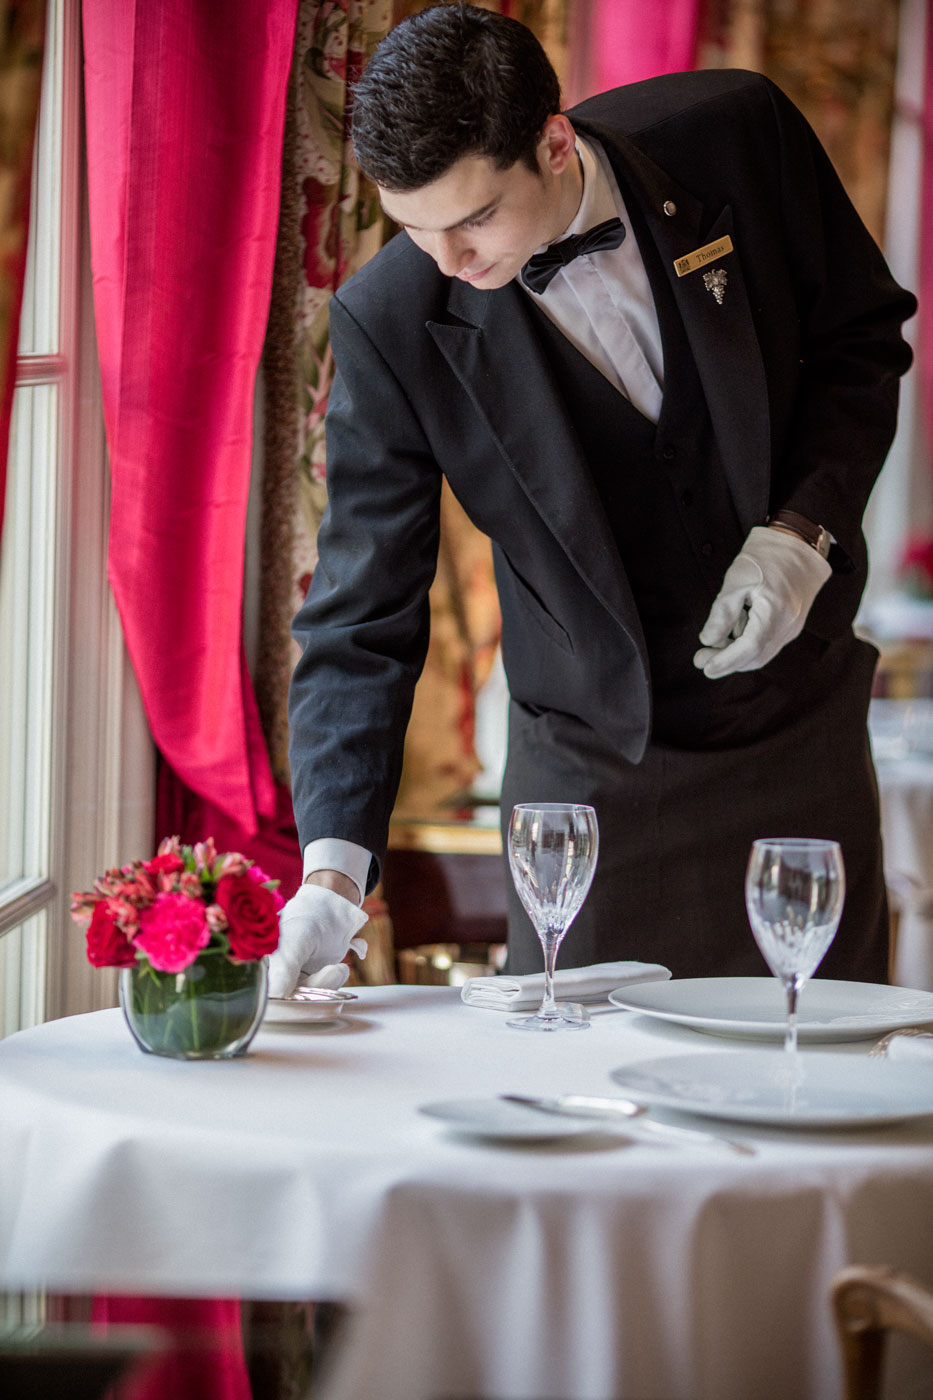 Staff working at the luxory hotel Le Bristol Paris